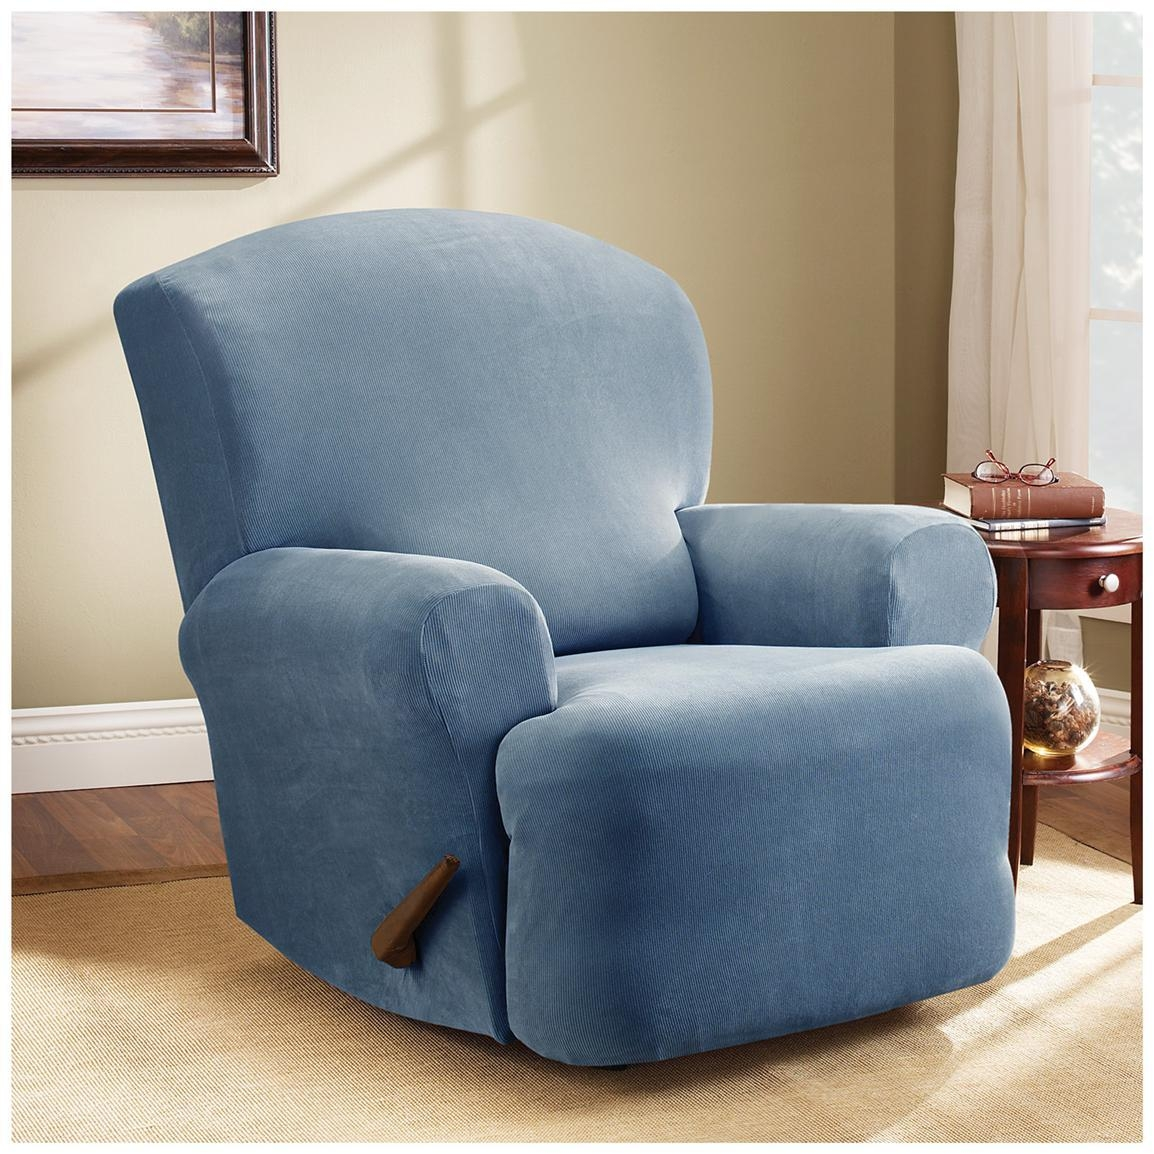 20 Ideas of Stretch Covers for Recliners  Sofa Ideas